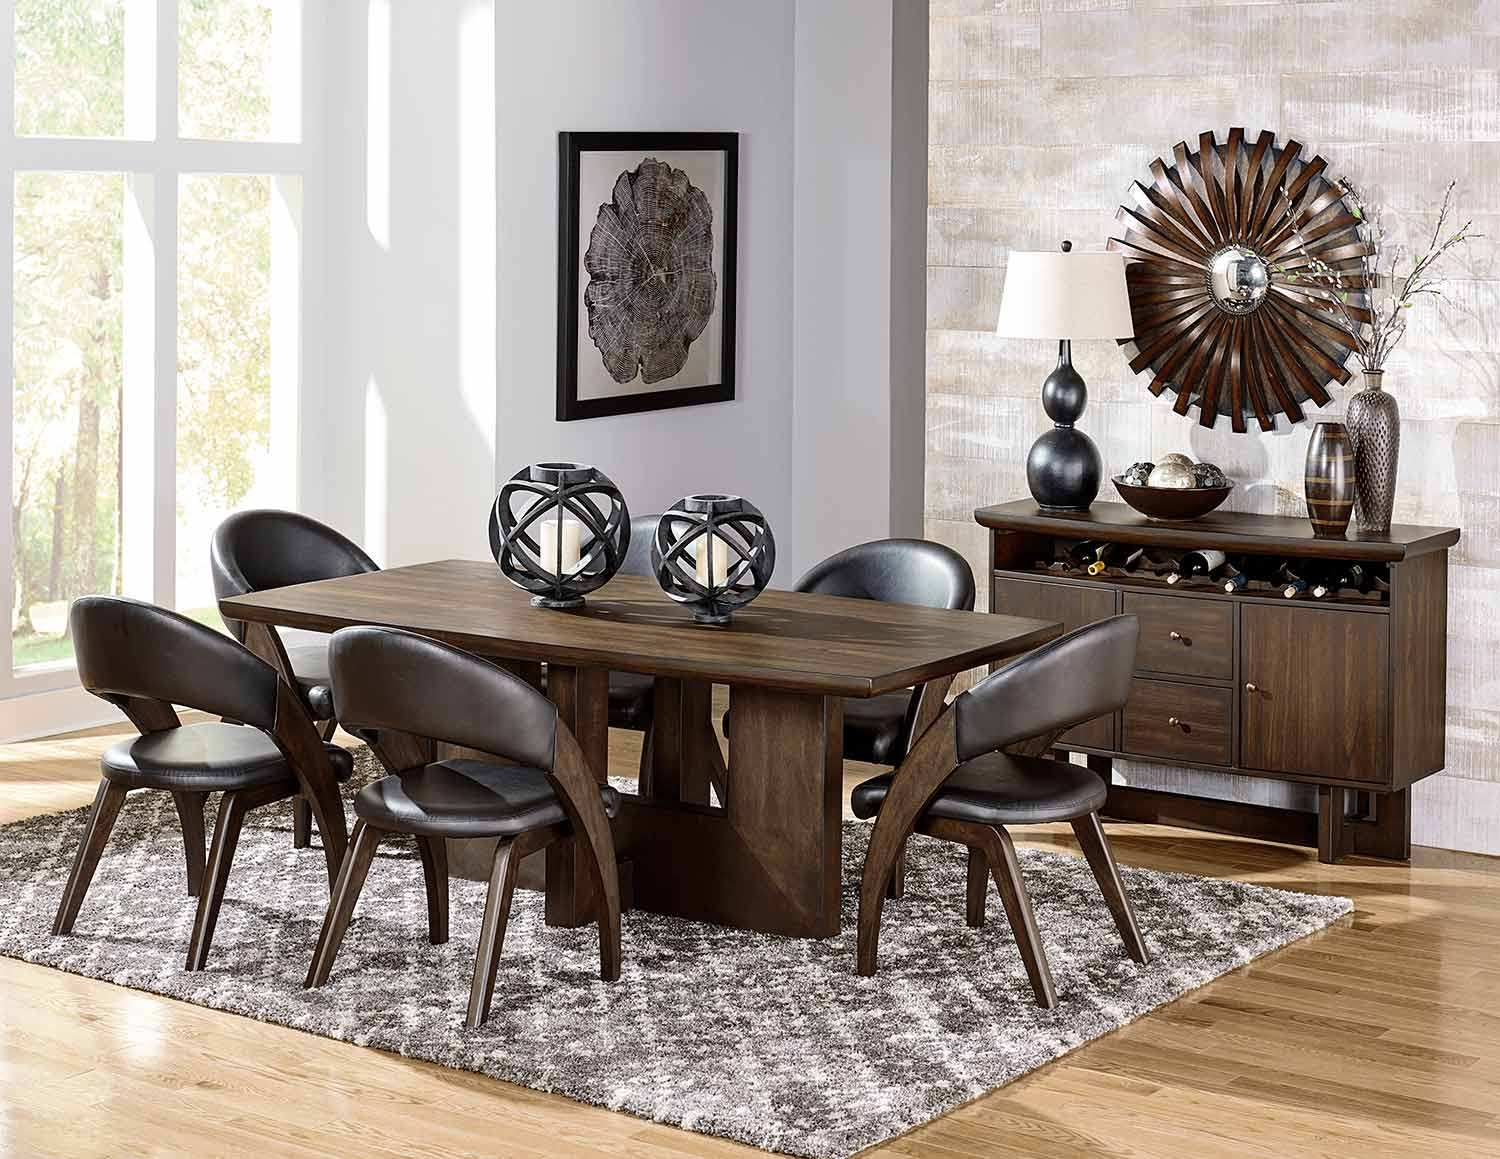 Homelegance Onofre Dining Set - Brown